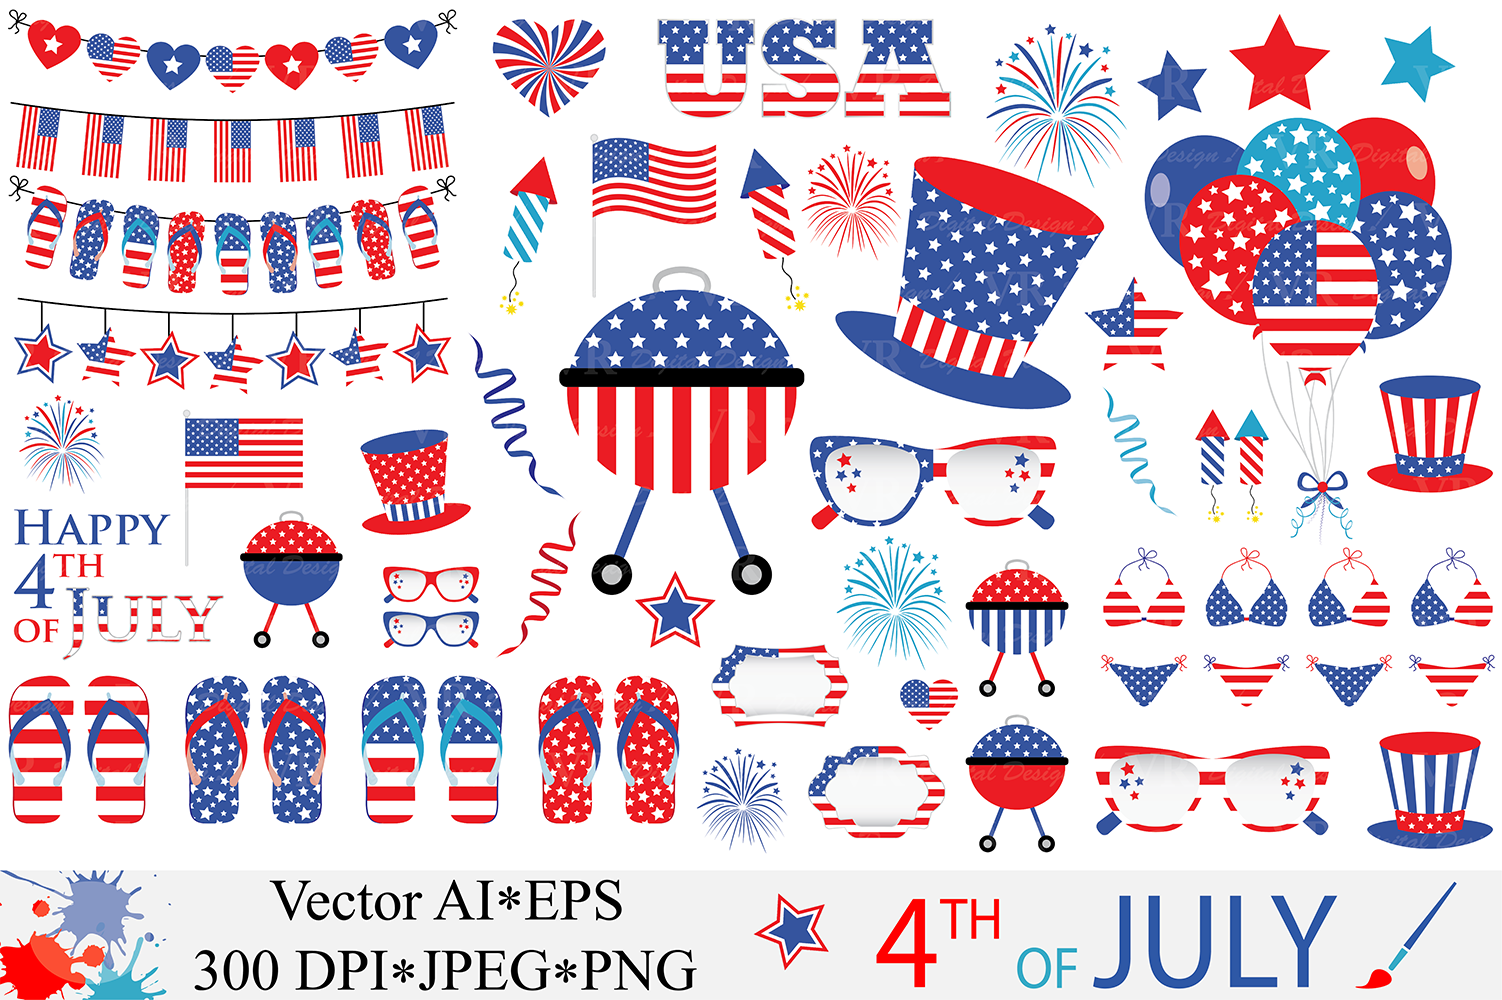 4th of July Clipart Graphic Illustrations By VR Digital Design